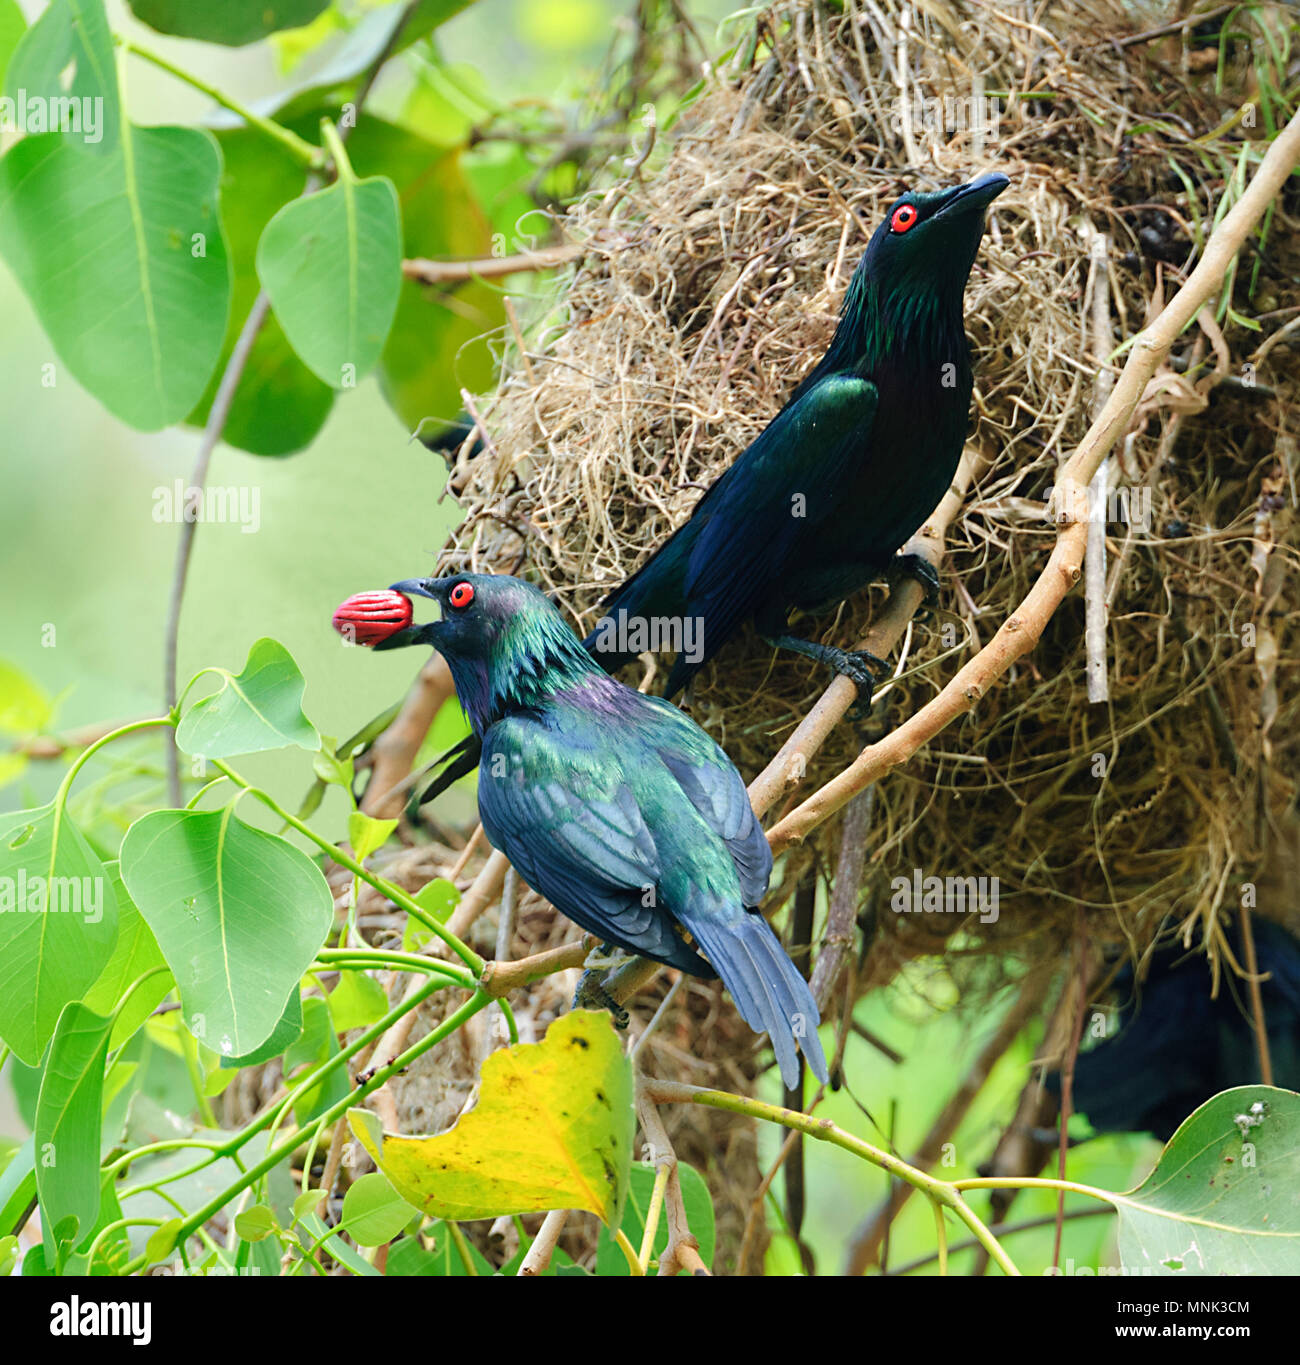 a-pair-of-metallic-starlings-or-shining-